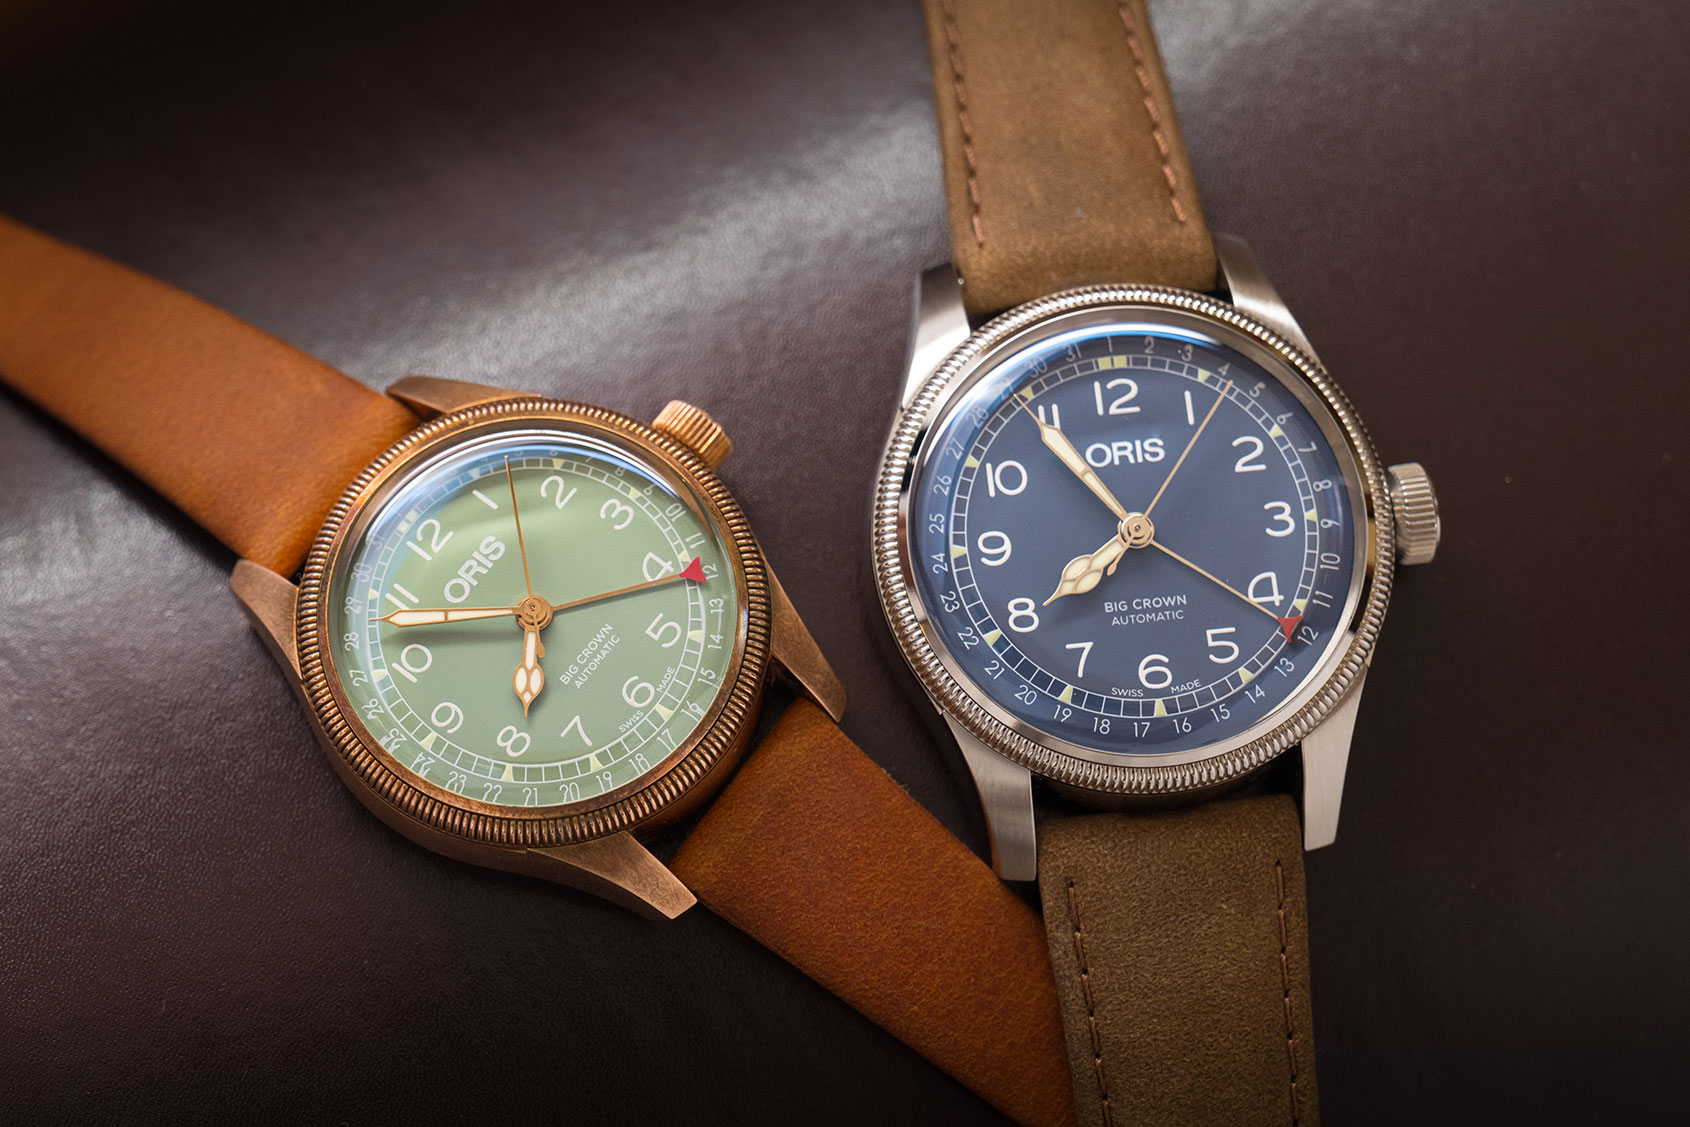 INTRODUCING: The Oris Big Crown Pointer Date in blue and the brand new 36mm version available in both steel and bronze